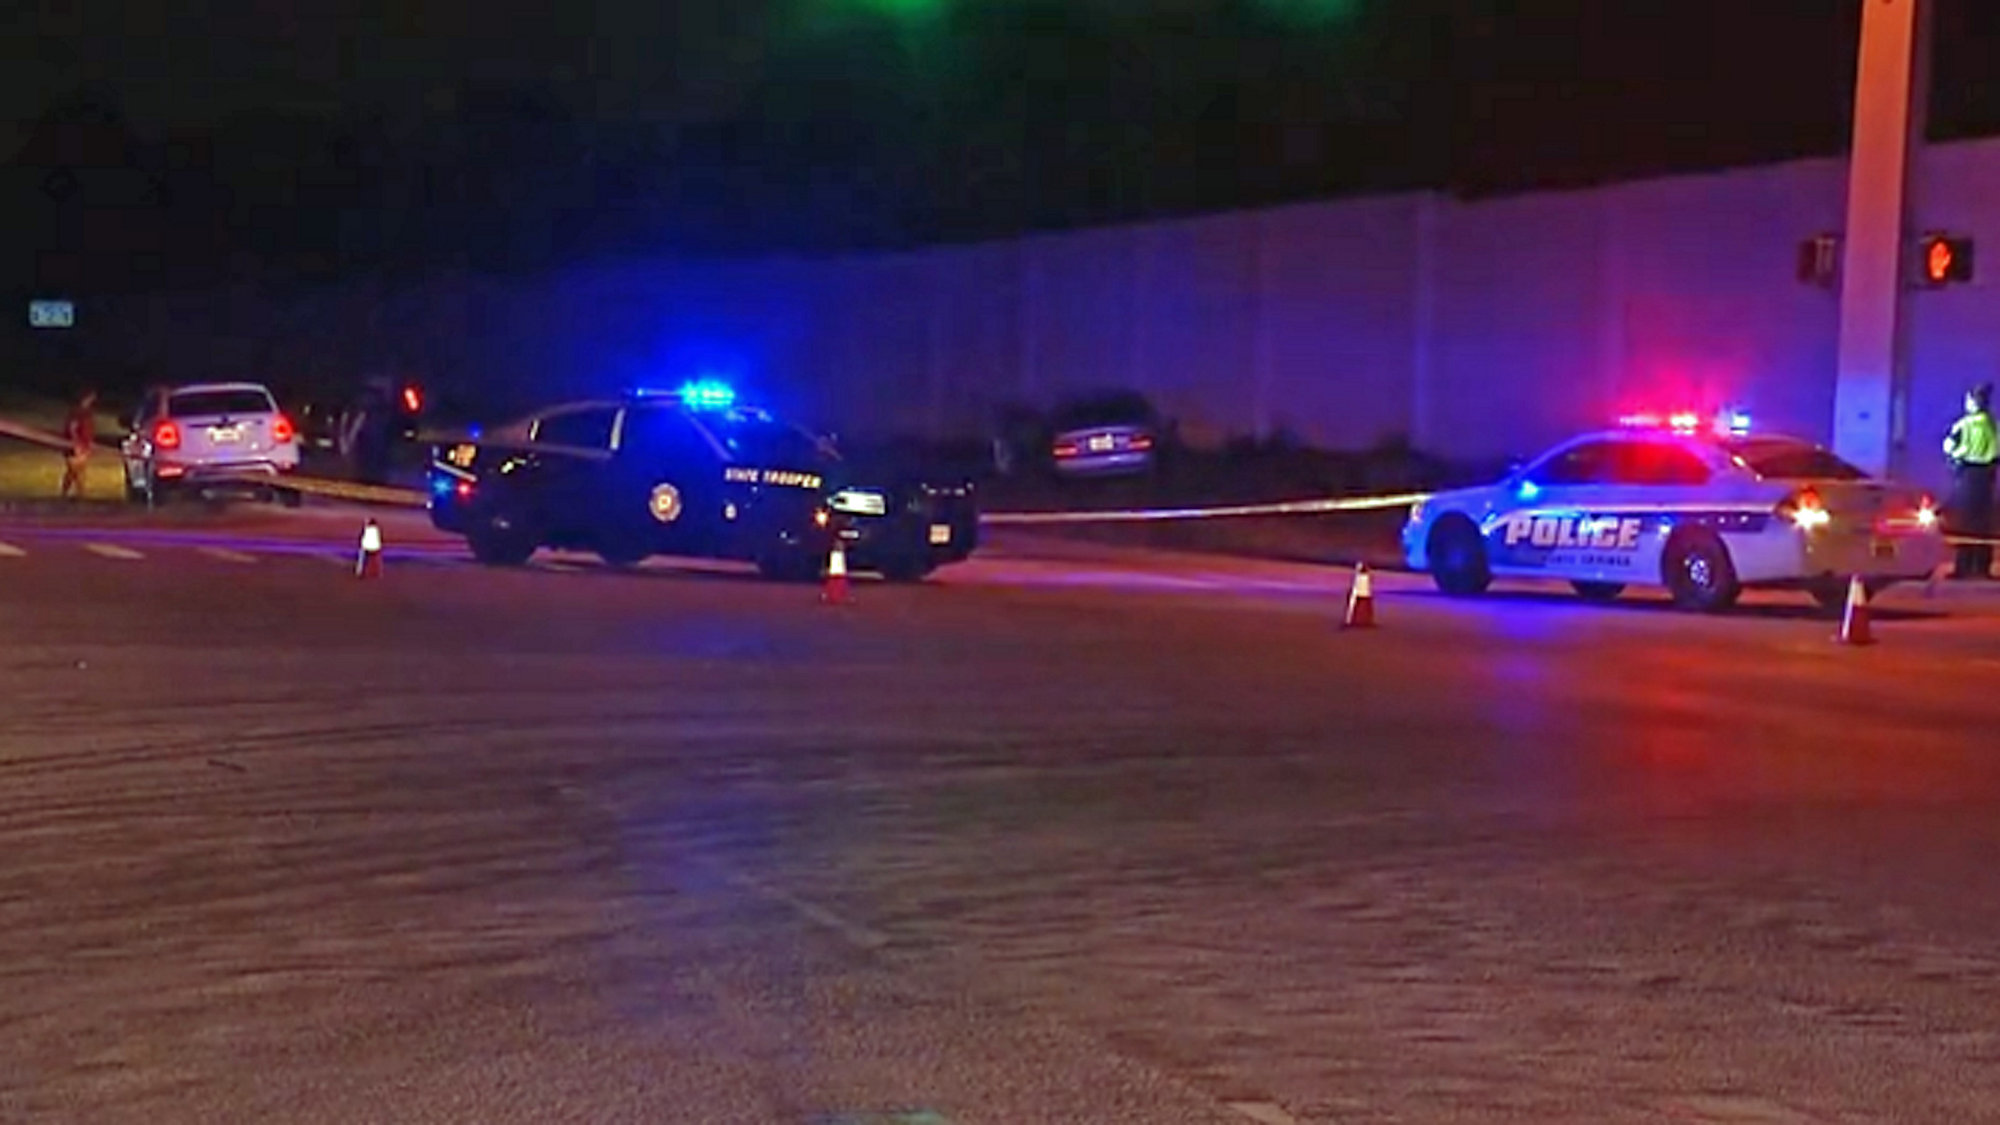 Infant Killed After Being Hit by Car in Altamonte Springs